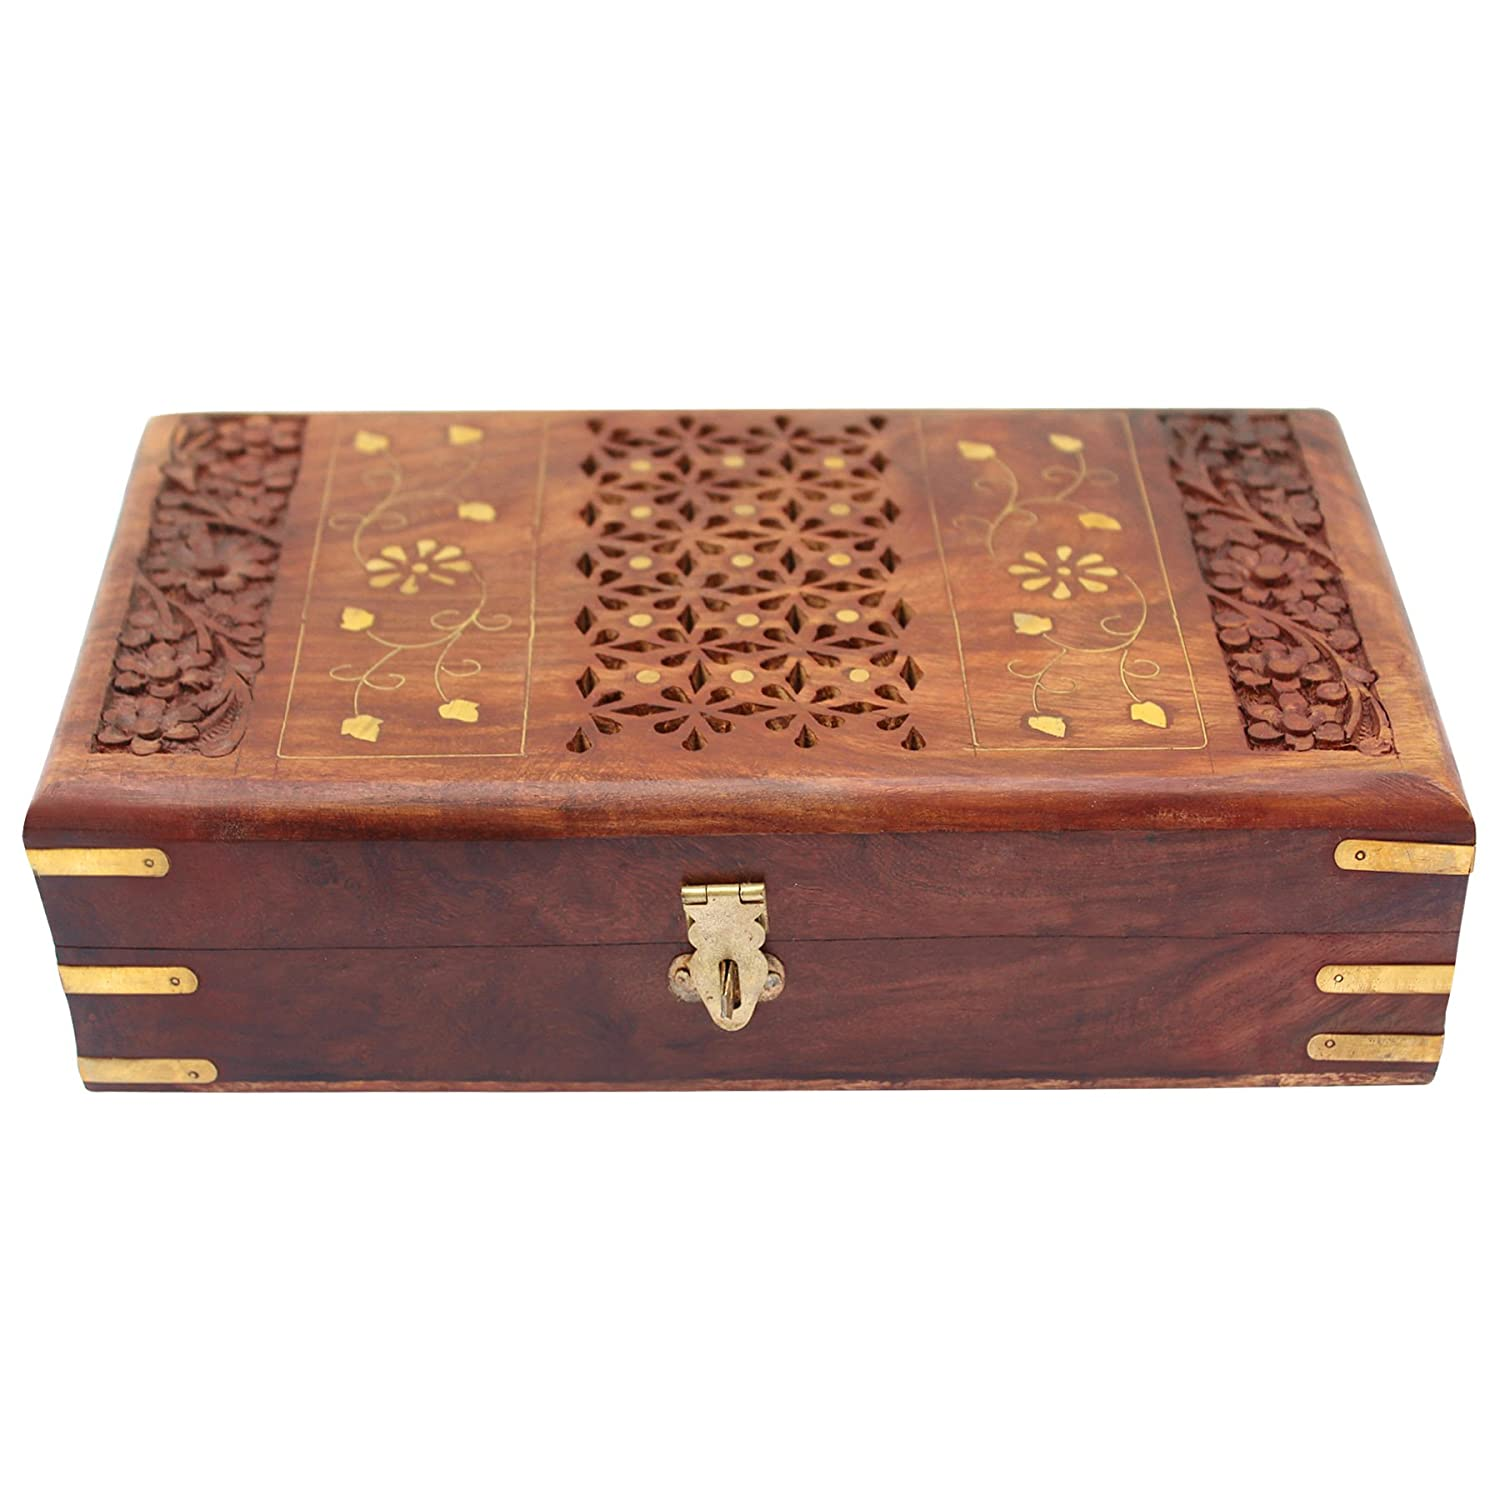 Sheesham wood Wooden Jewellery Box for Women Jewel Organizer Hand Carved with Intricate Carvings Gift Items - 10 inches